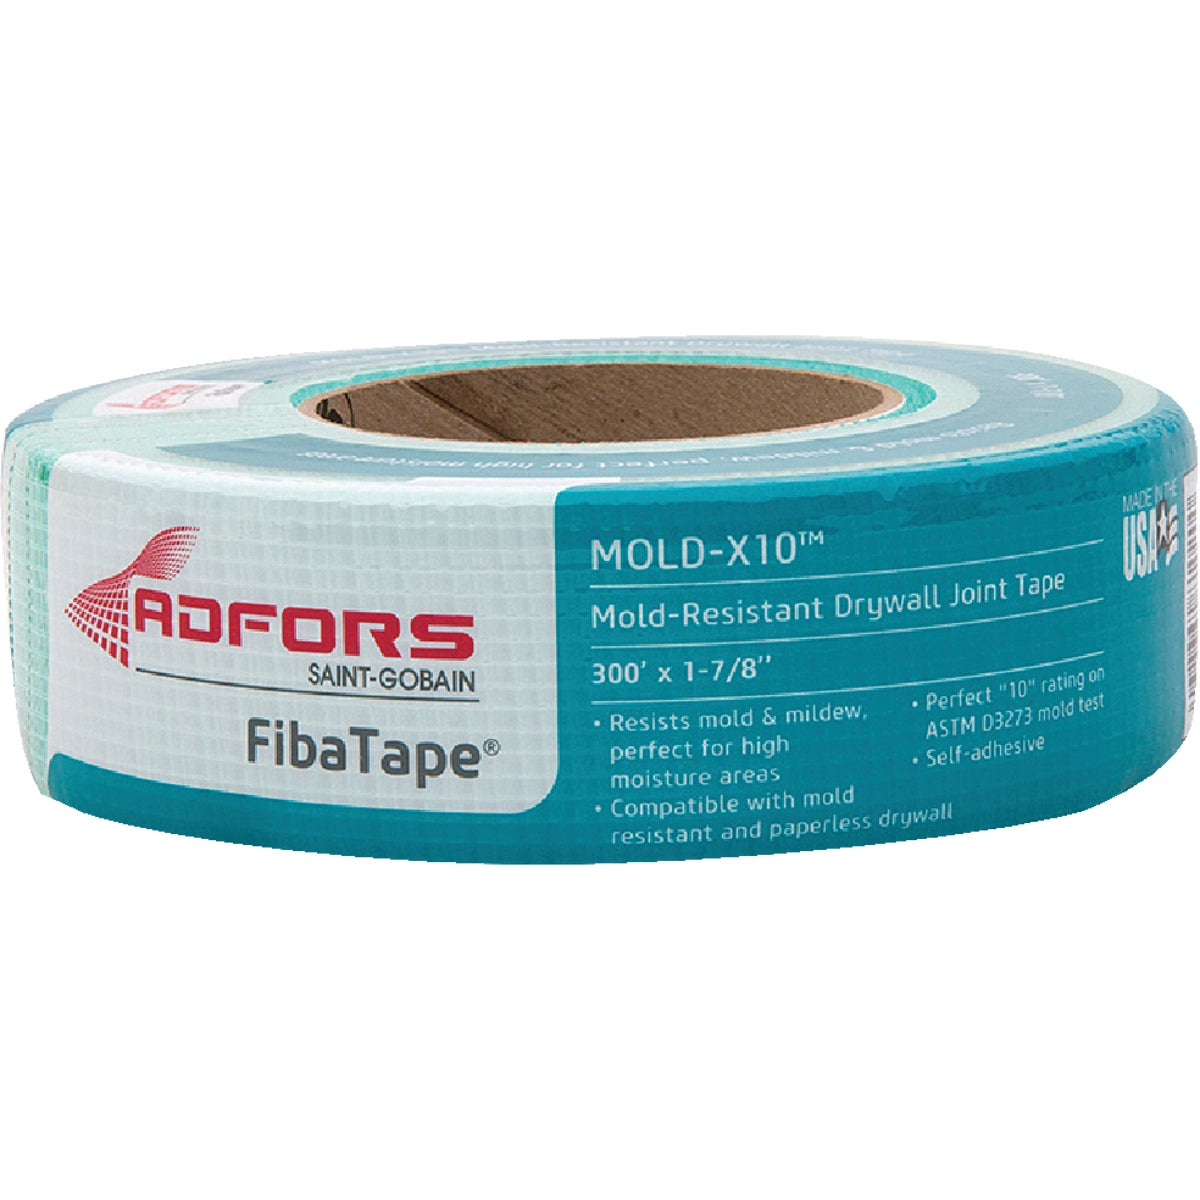 300' MOLD-X10 MESH TAPE - FDW8209-U by Saint Gobain